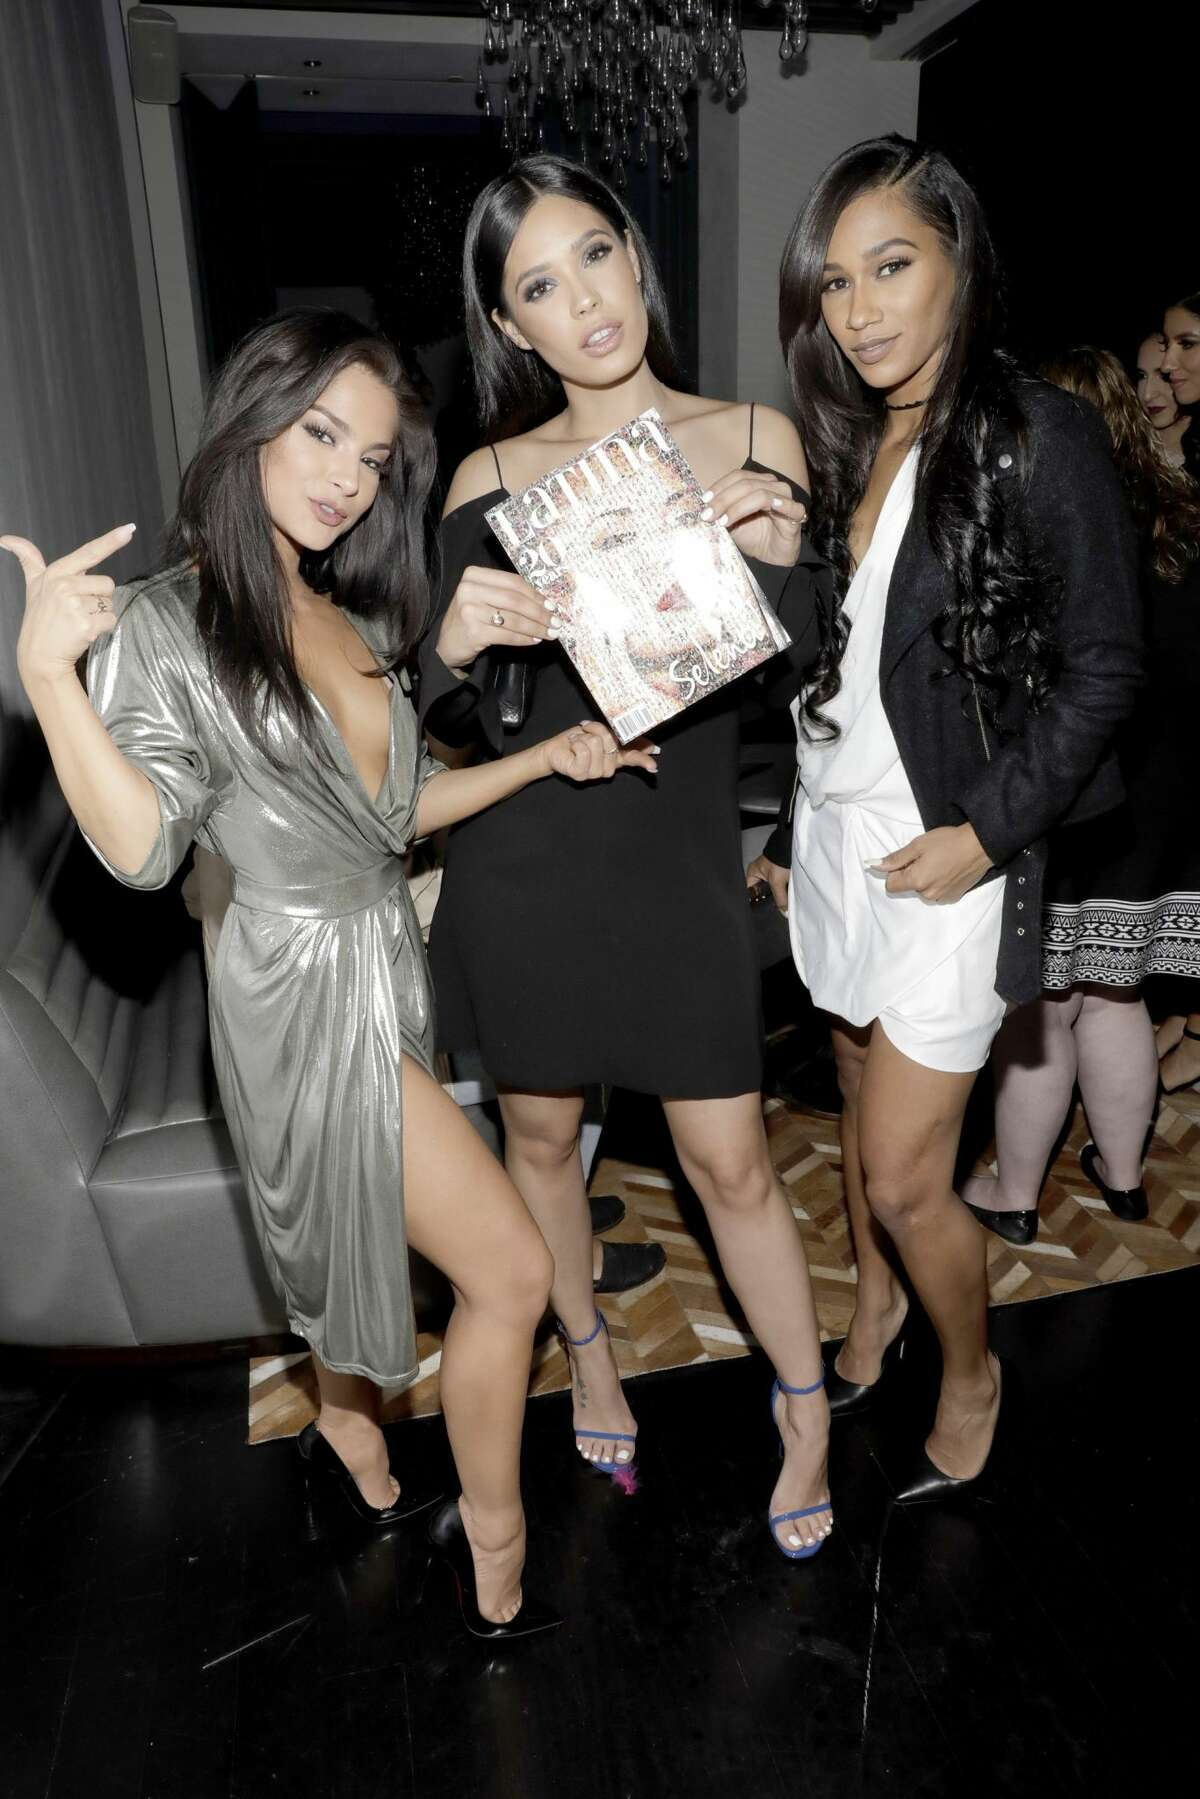 LOS ANGELES, CA - NOVEMBER 02: (L-R) MoMo Gonzalez, Otmara Marrero, and BIA attend Latina's 20th Anniversary celebrating The Hollywood Hot List Honorees at STK on November 2, 2016 in Los Angeles, California. (Photo by Rachel Murray/Getty Images for Latina Magazine)